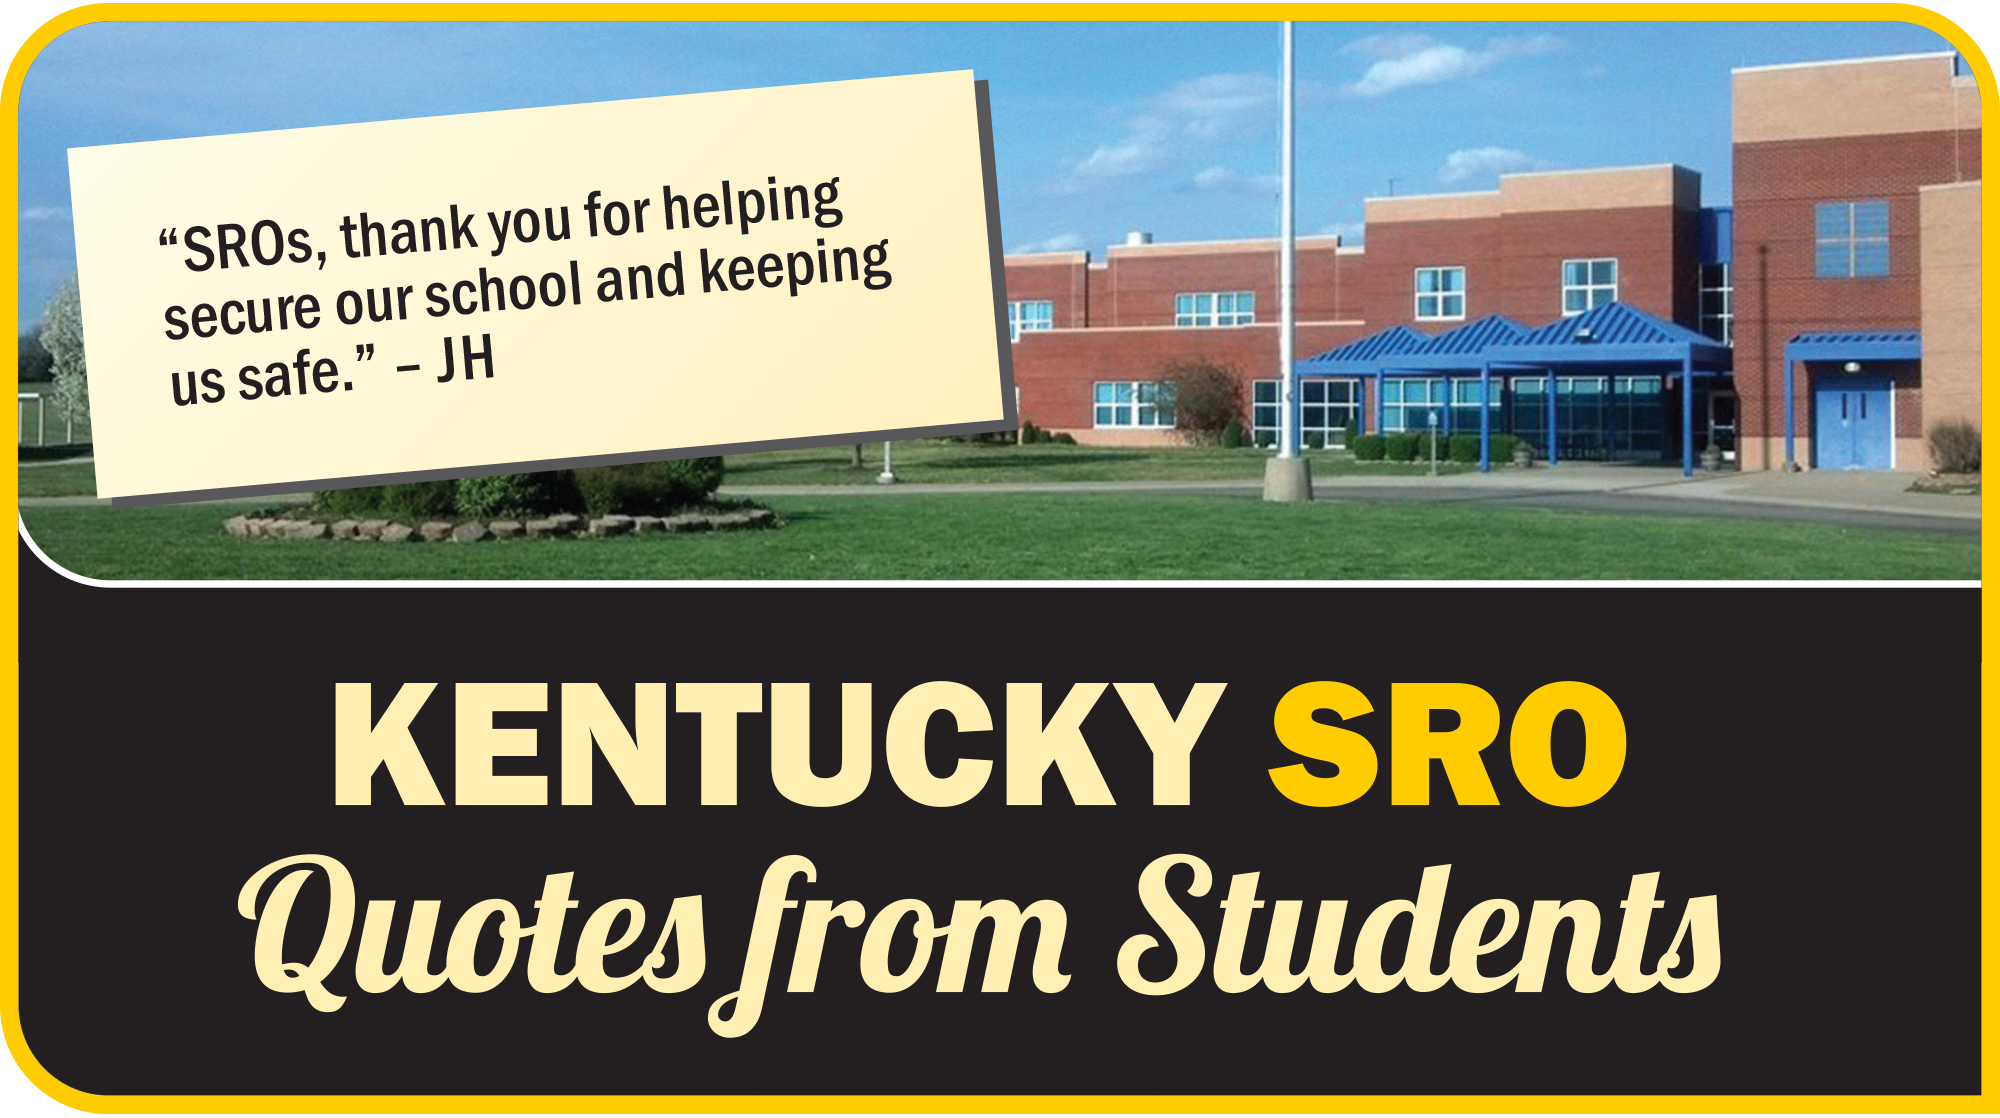 Lincoln County Middle School KY SRO Quotes from Students